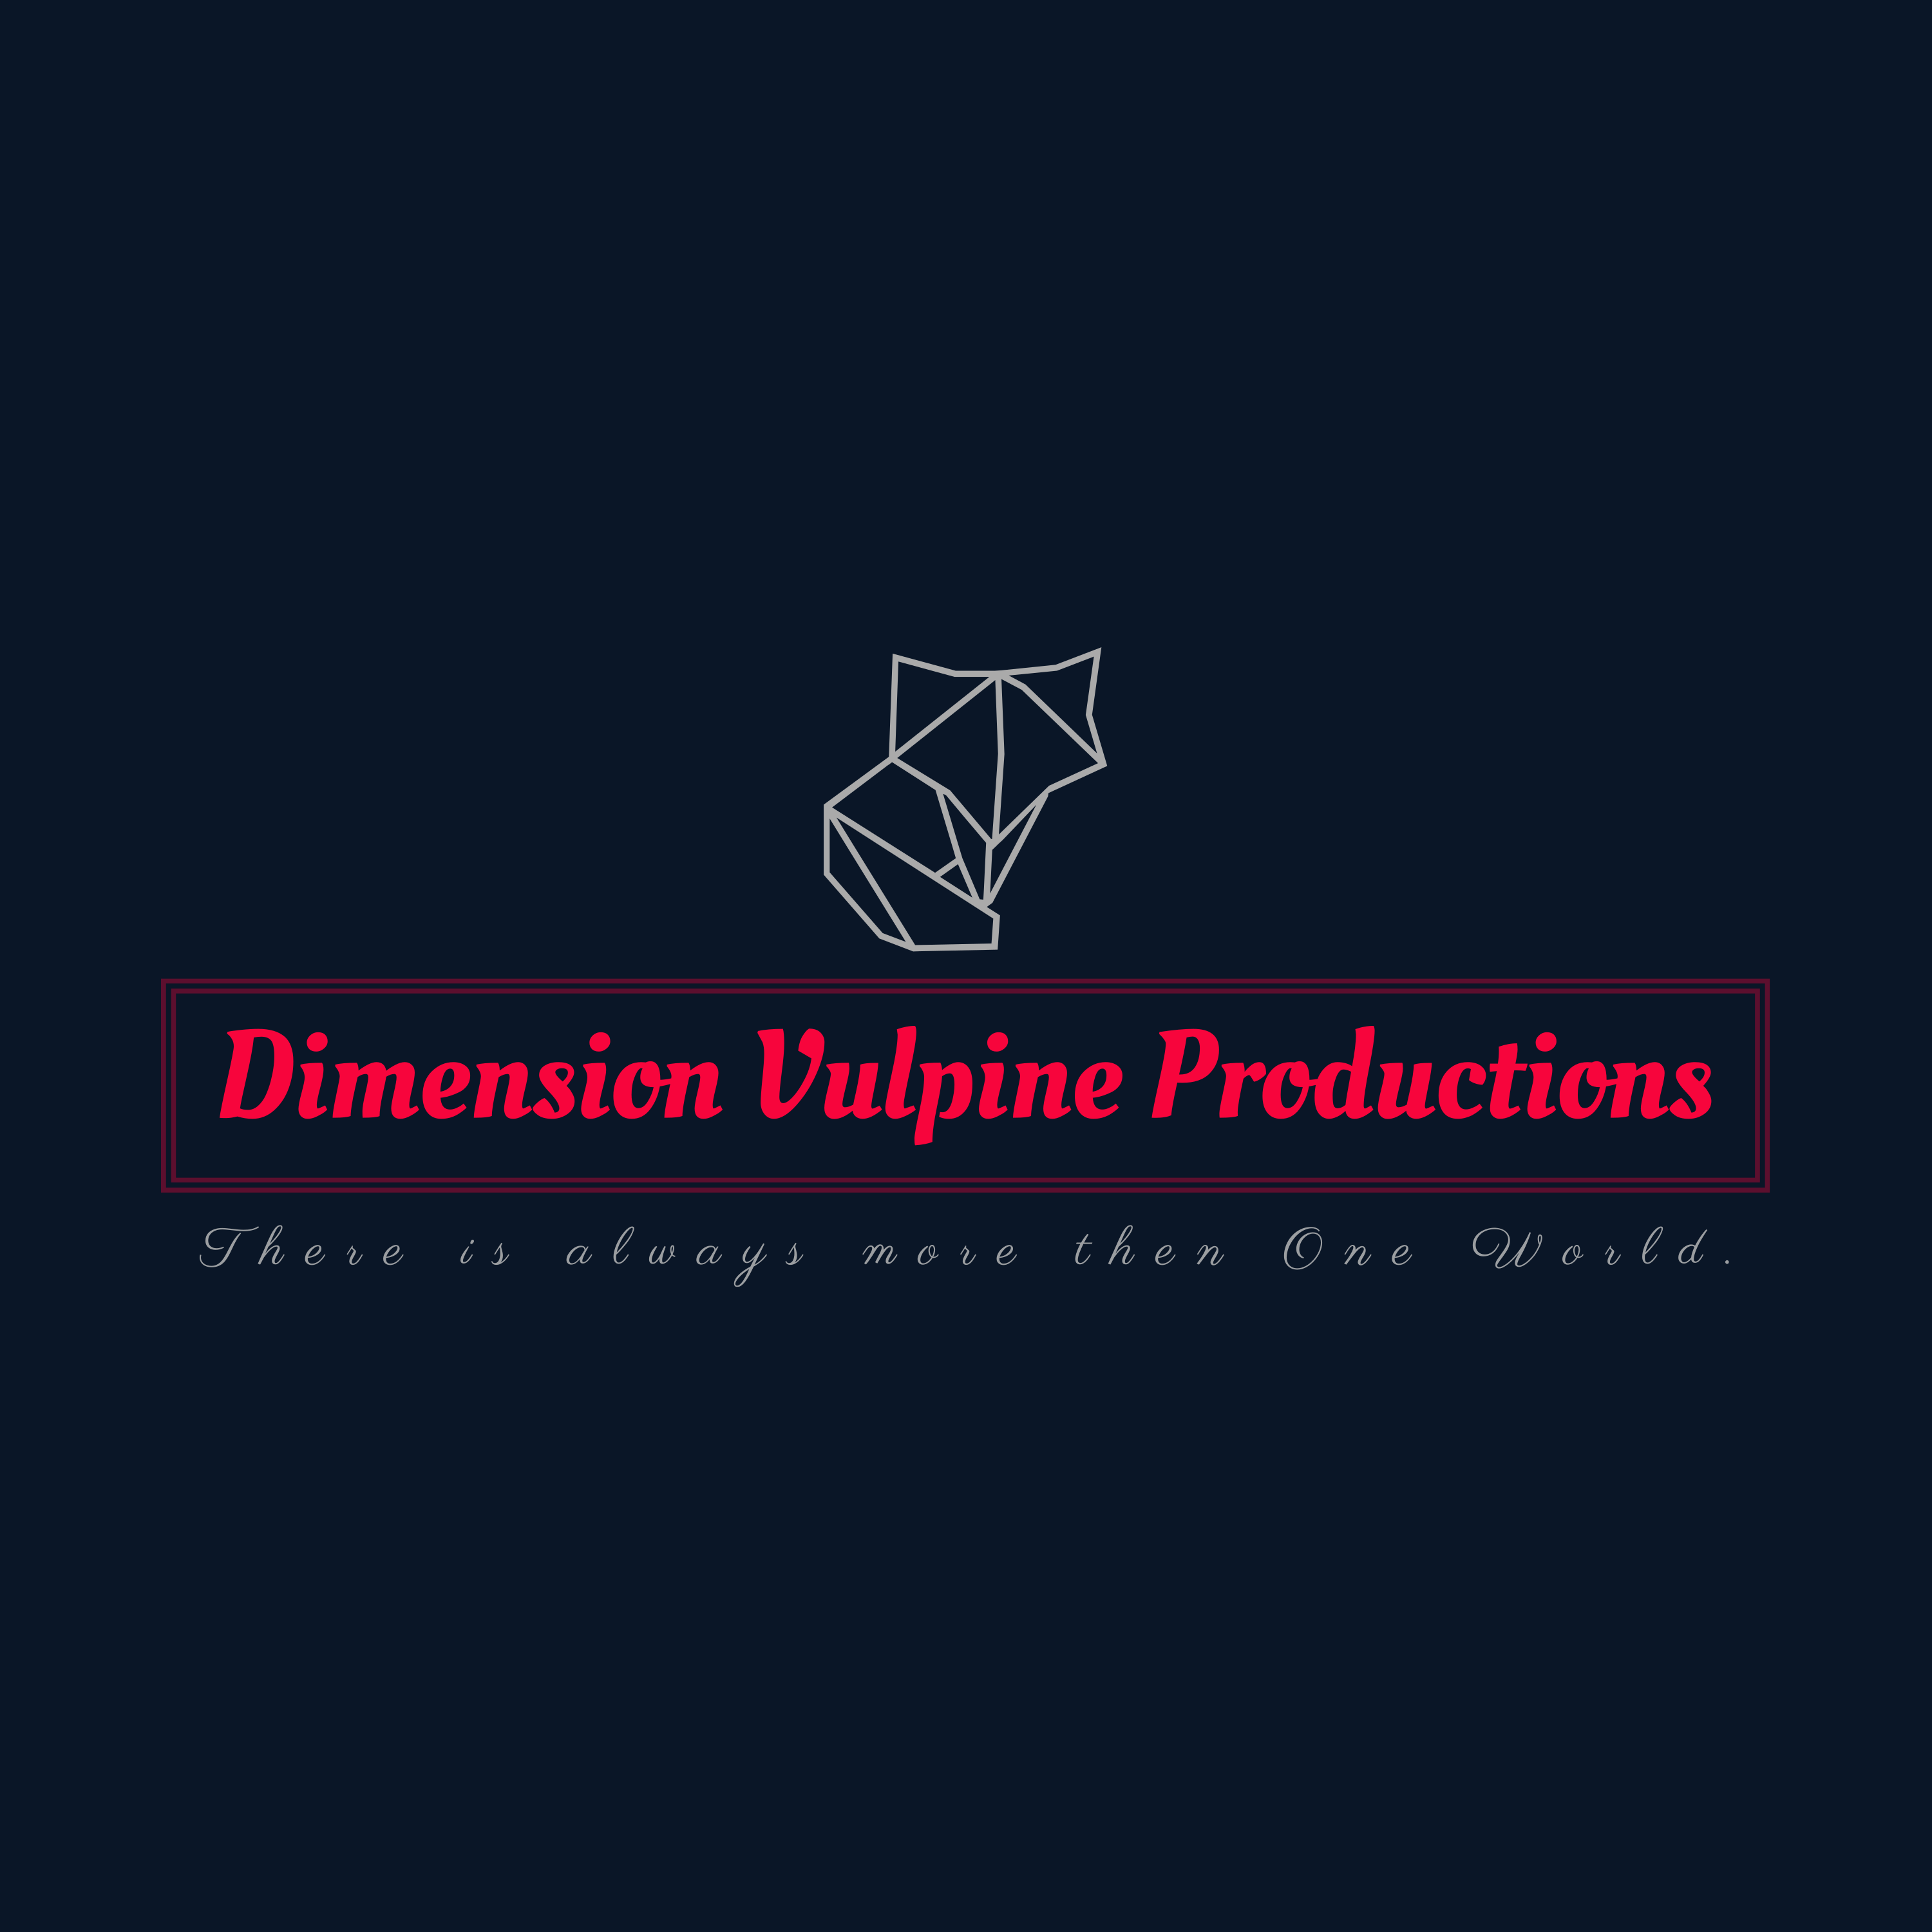 Dimension Vulpine Productions